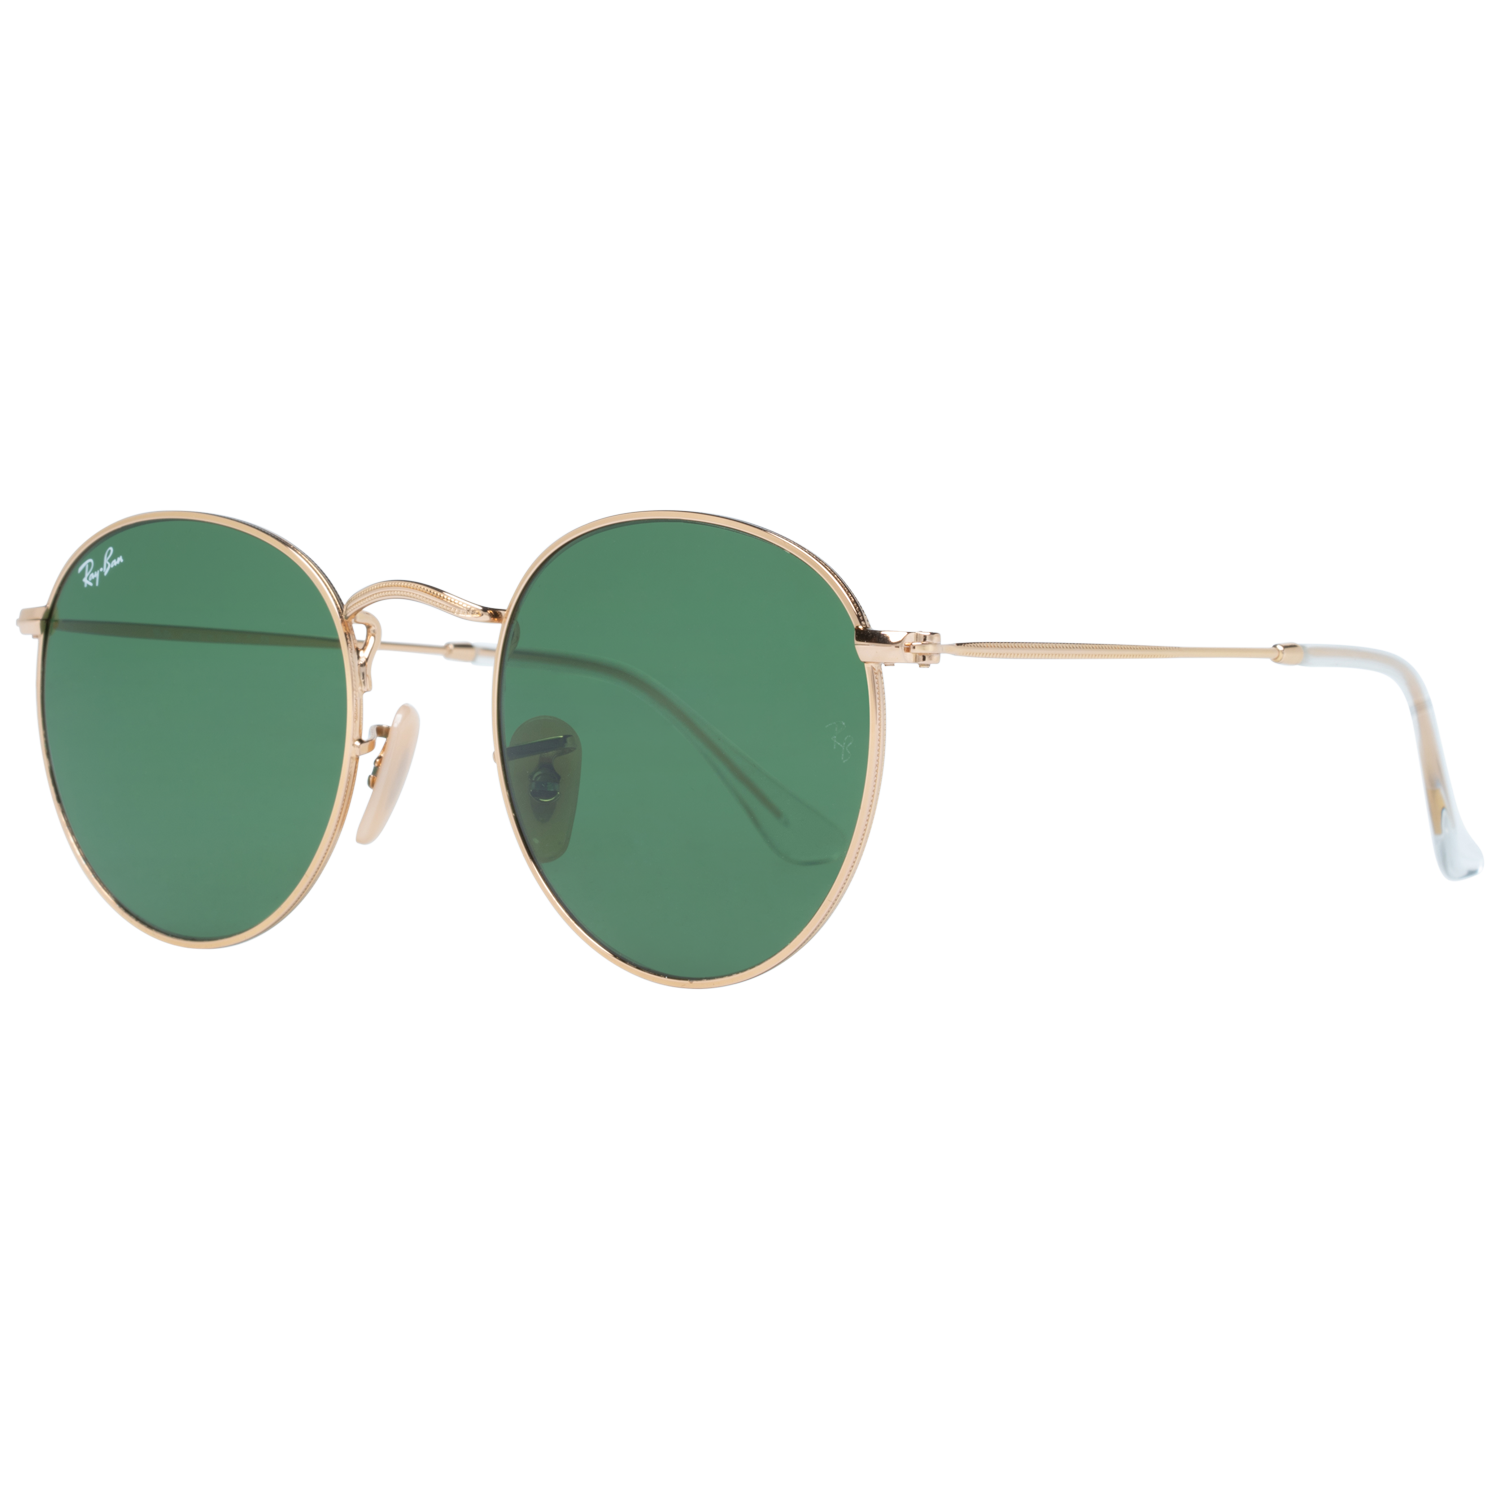 Ray-Ban Sunglasses RB3447 001 50 Round